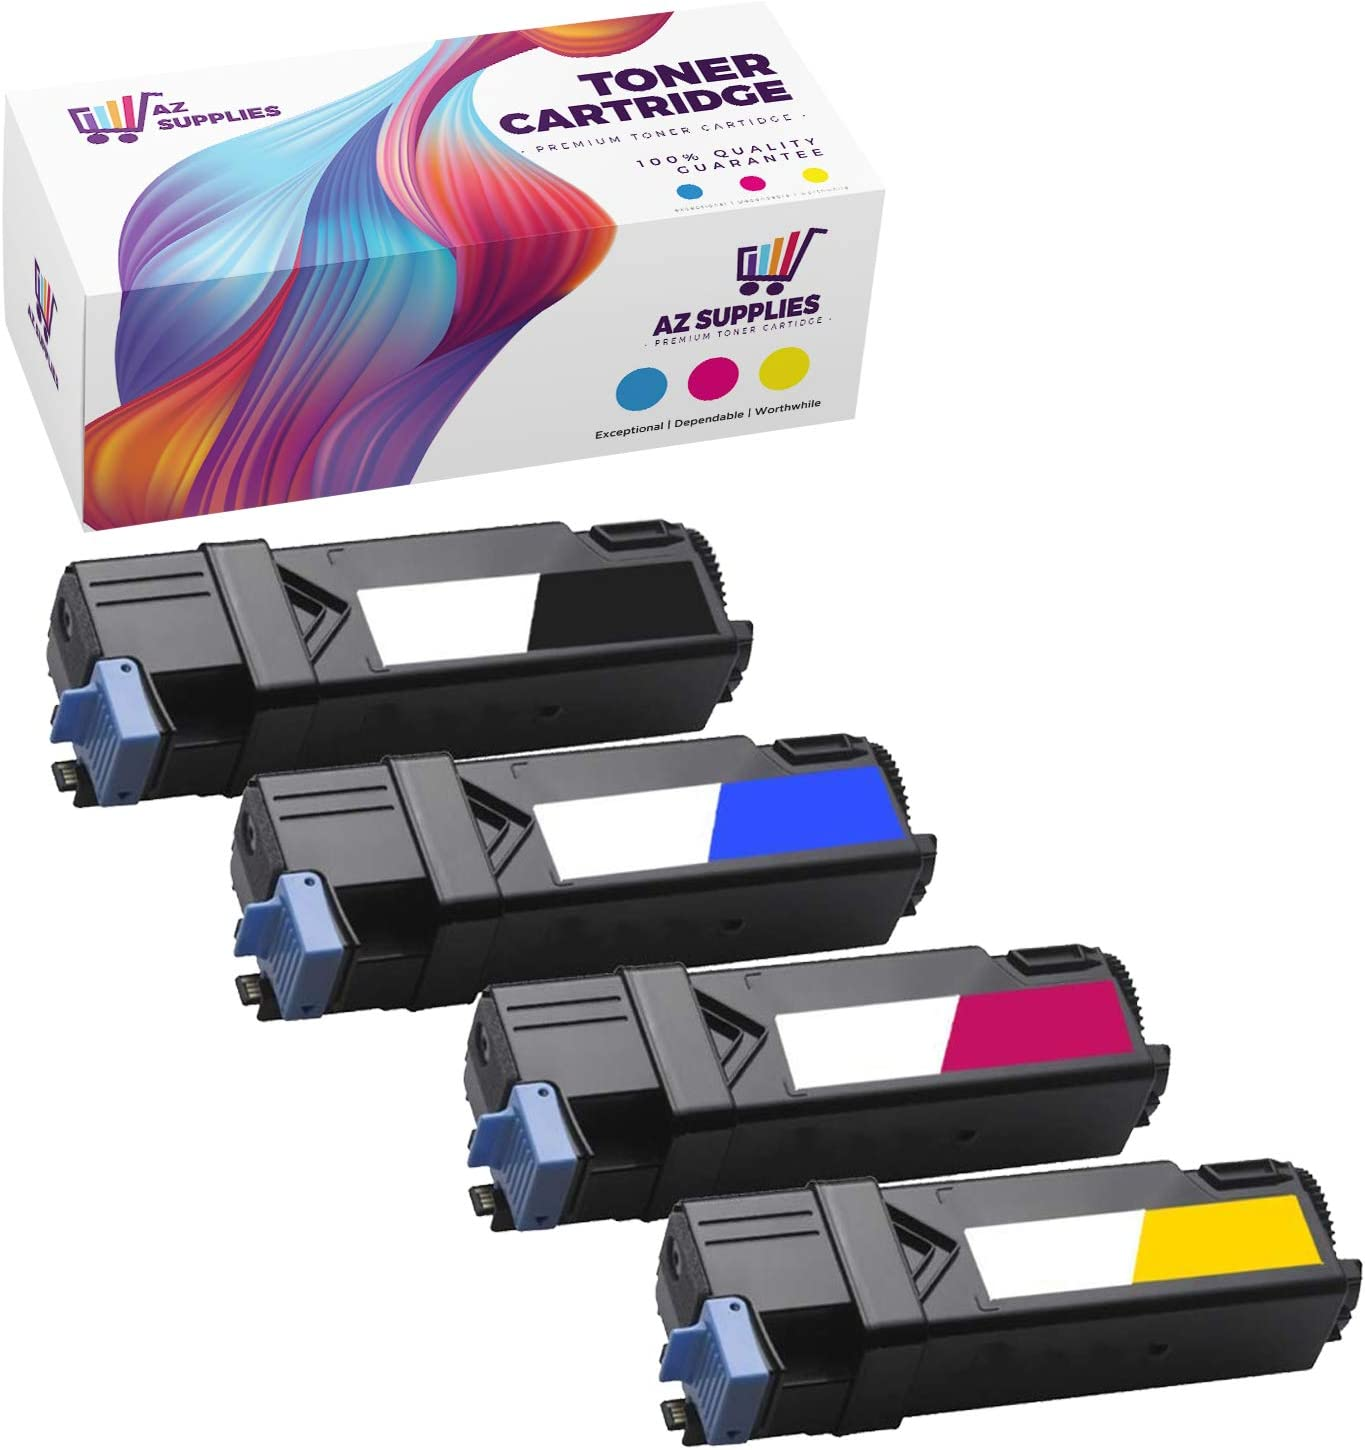 AZ Supplies Compatible Toner Cartridge Replacement for Dell 2150, 331-0719, 331-0716, 331-0717, 331-0718 for use in Dell 2150, 2150CN, 2150CDN, 2155,2155CN,2155CDN (Black,Cyan,Yellow,Magenta, 4-pack).